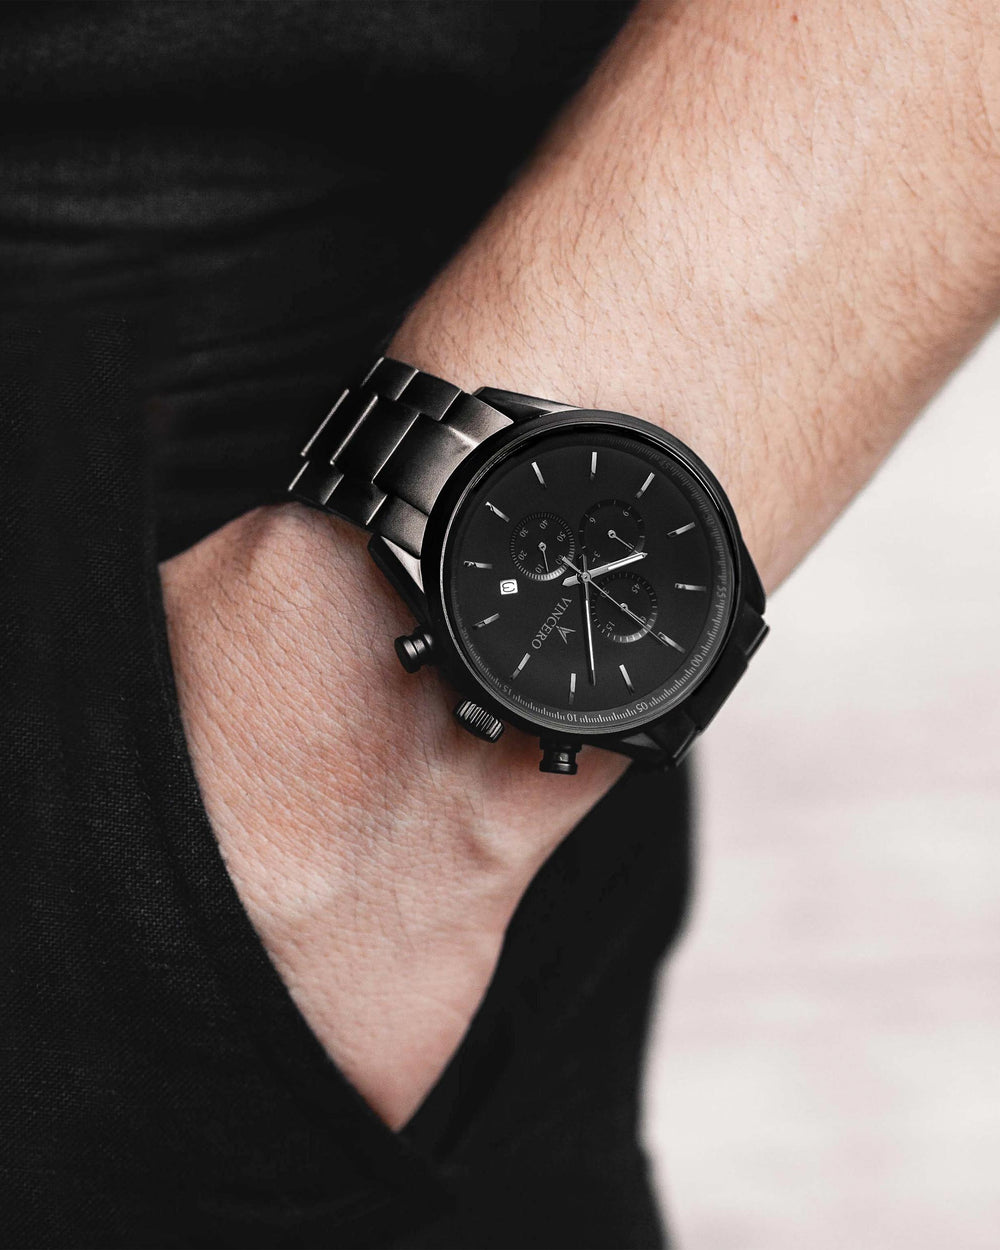 Chrono S Black 316L Stainless Steel Strap Matte Black Watch Face Matte Black Case Clasp Silver Accents